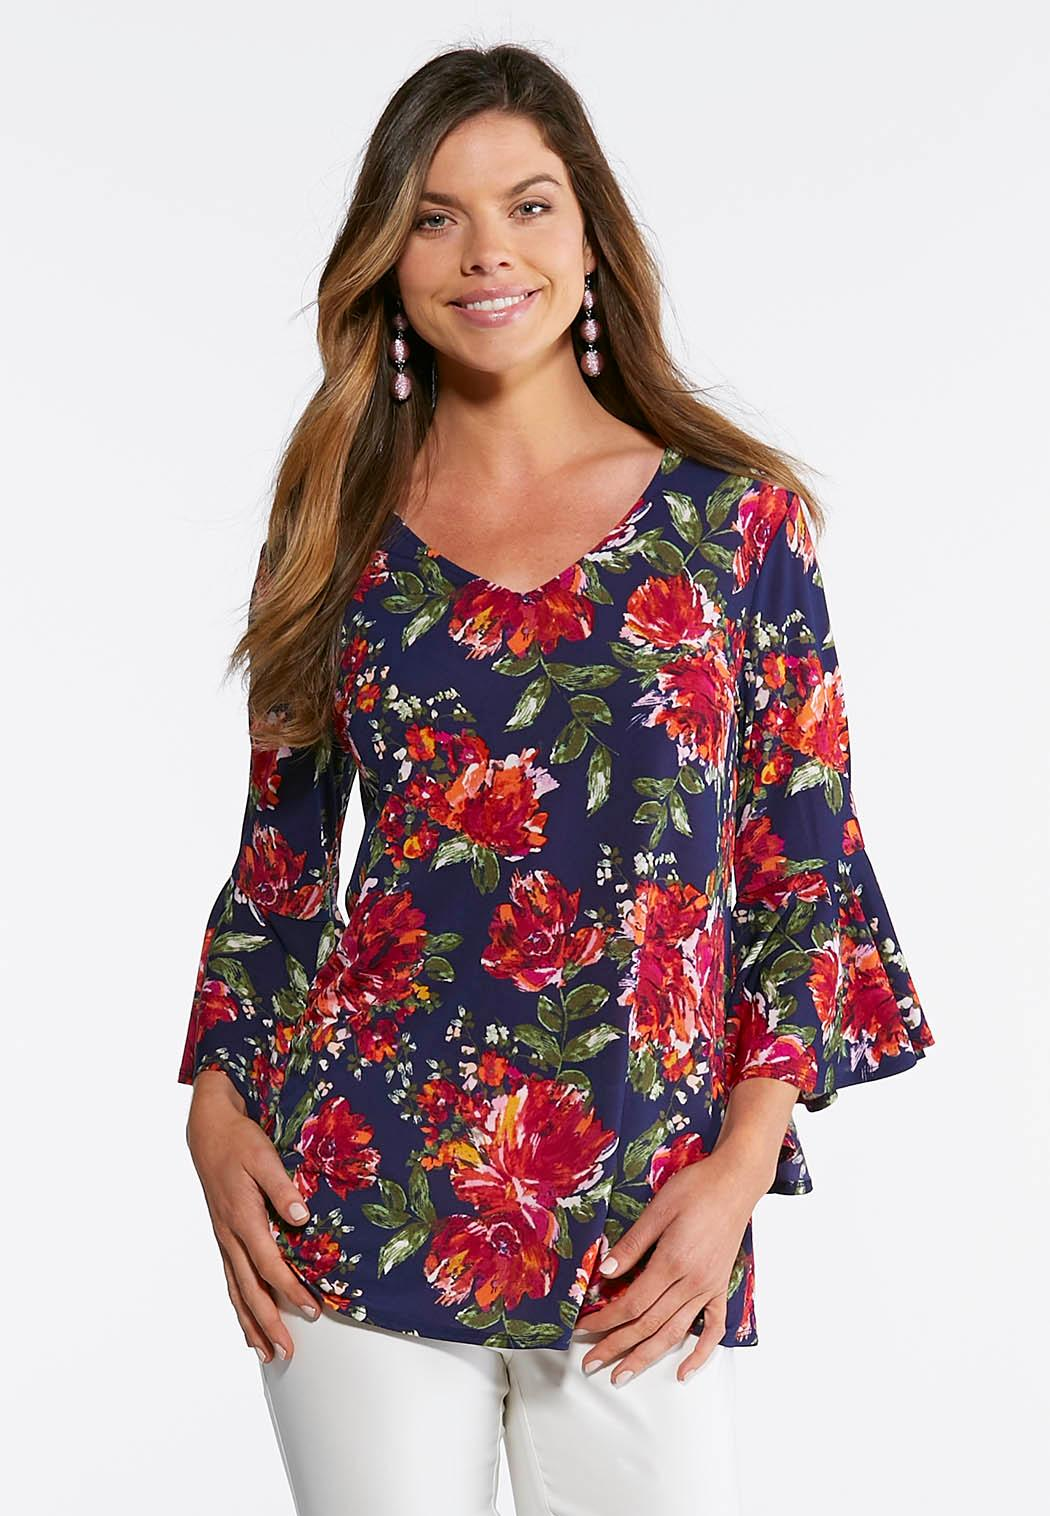 58b7deaed20 Cato Plus Size Clearance Tops